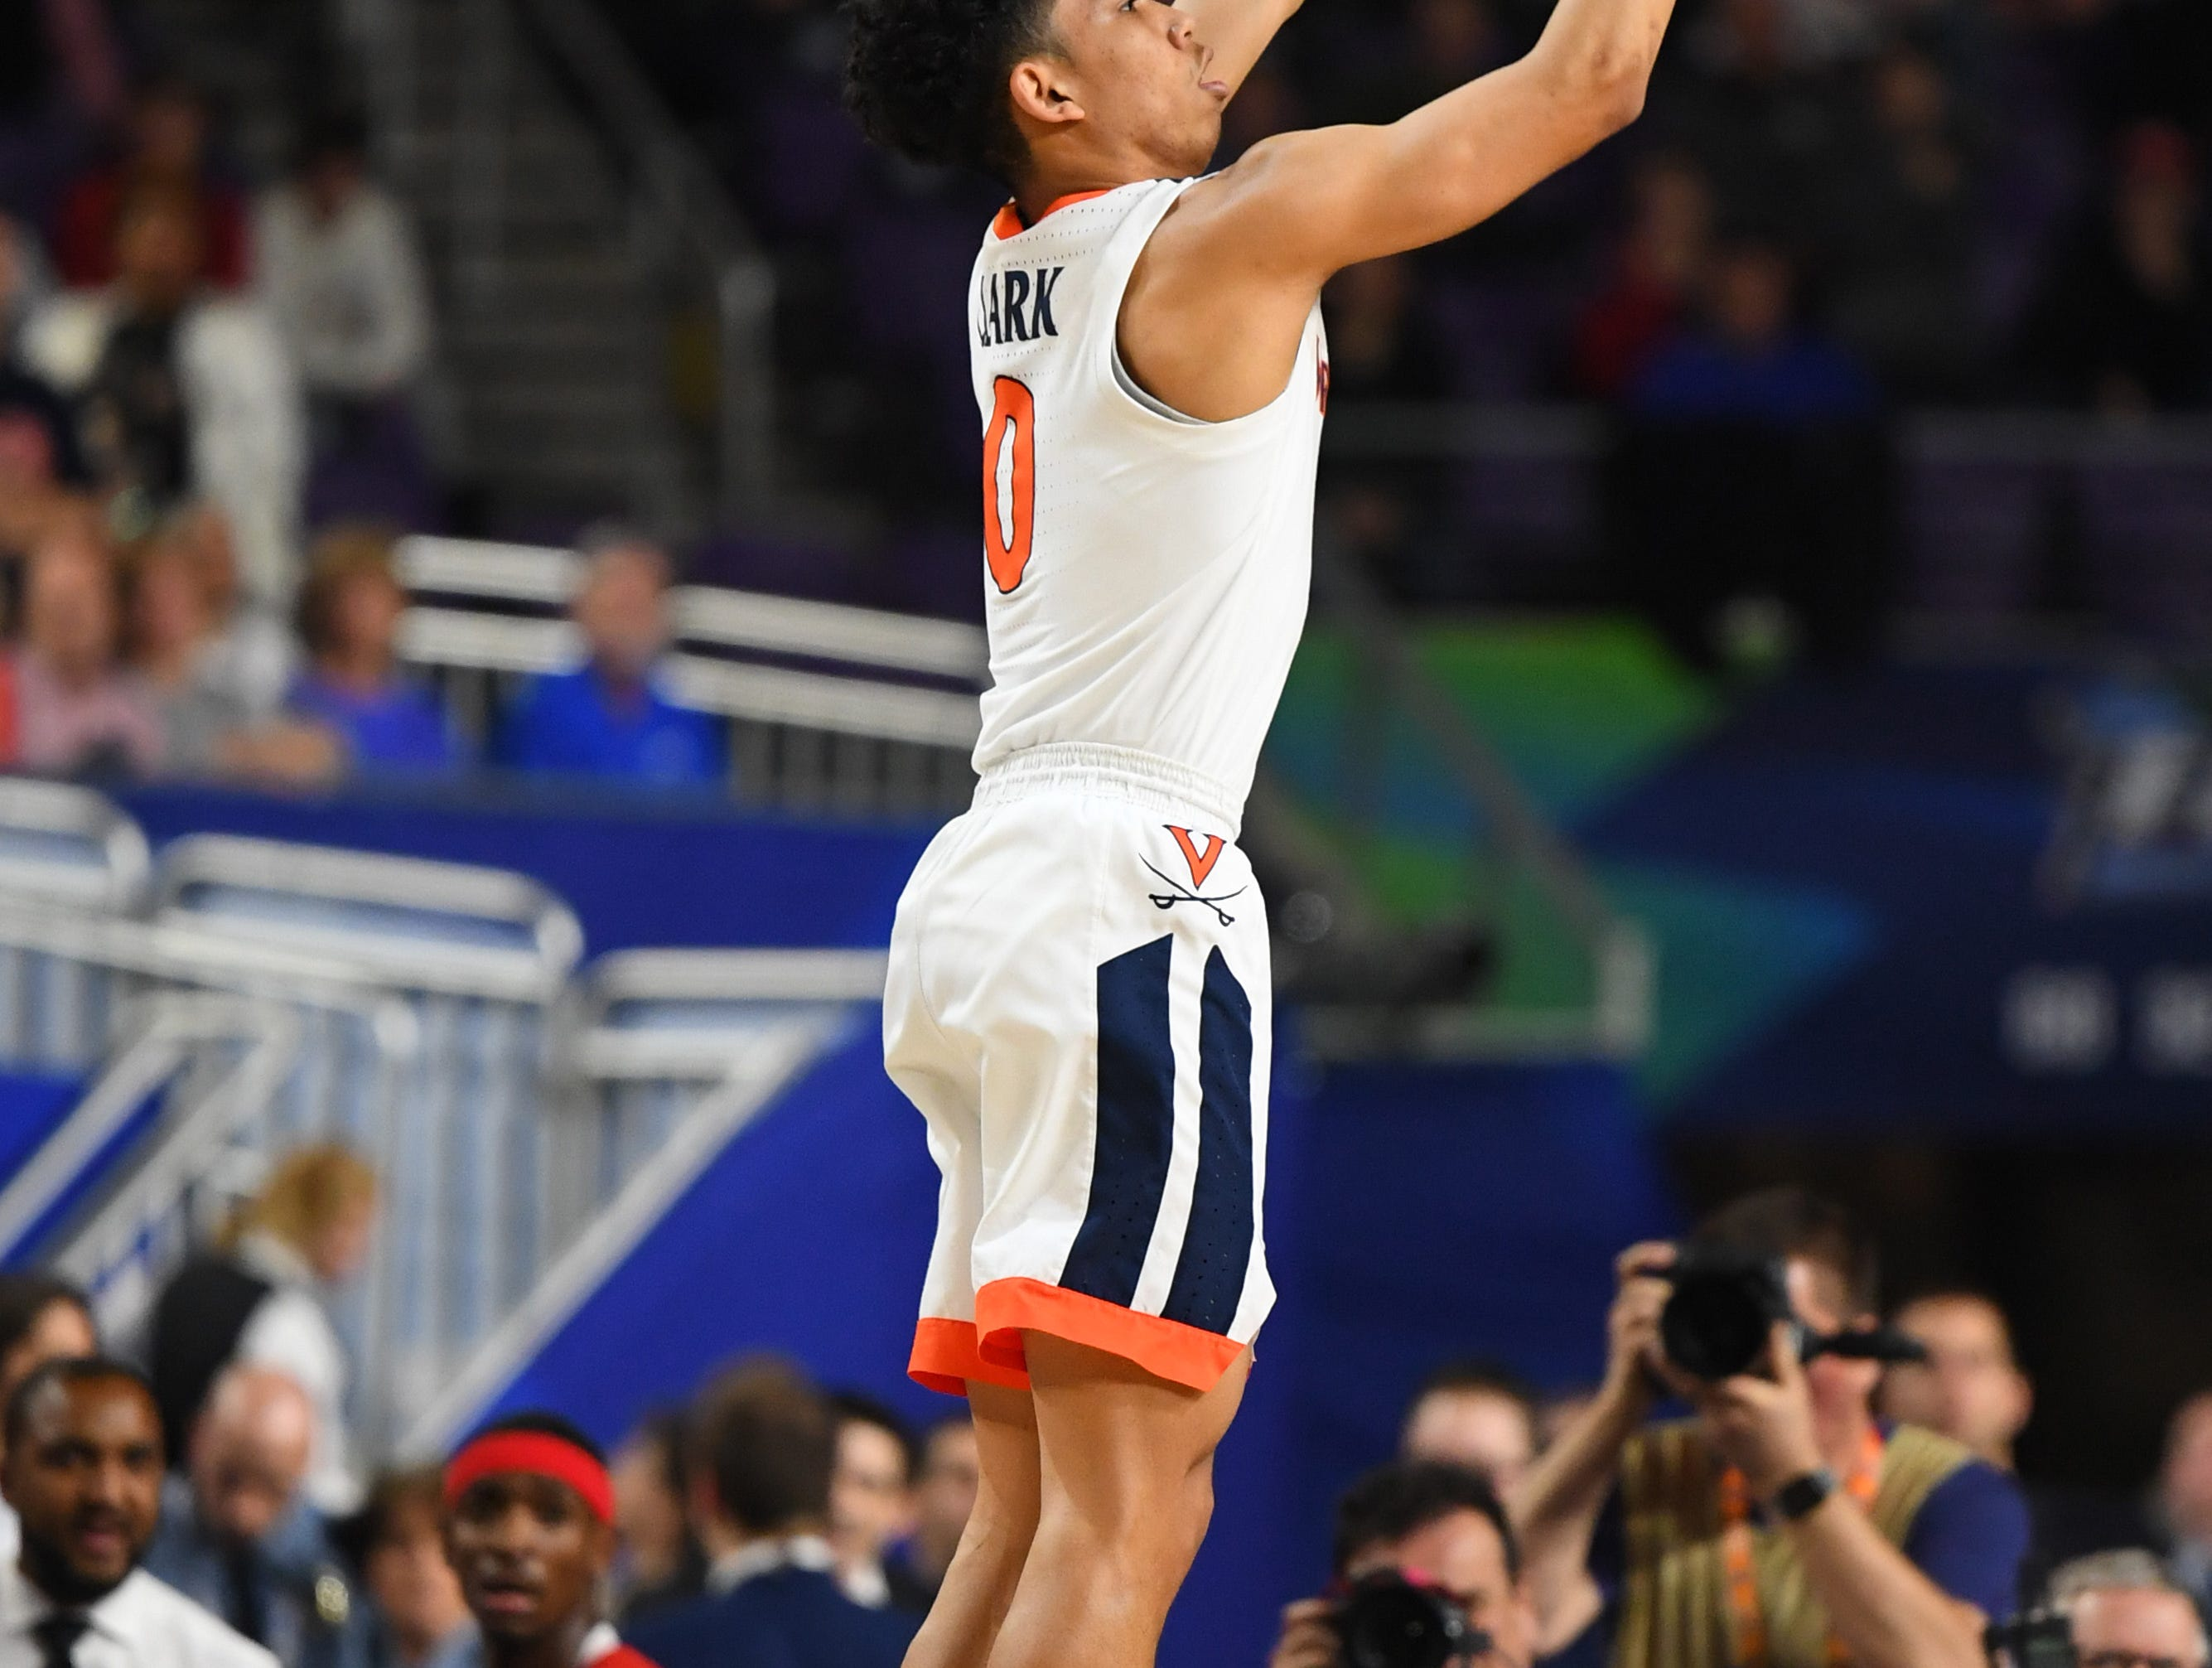 Apr 8, 2019; Minneapolis, MN, USA; Virginia Cavaliers guard Kihei Clark (0) hits a three-point shot against the Texas Tech Red Raiders in the championship game of the 2019 men's Final Four at US Bank Stadium. Mandatory Credit: Robert Deutsch-USA TODAY Sports